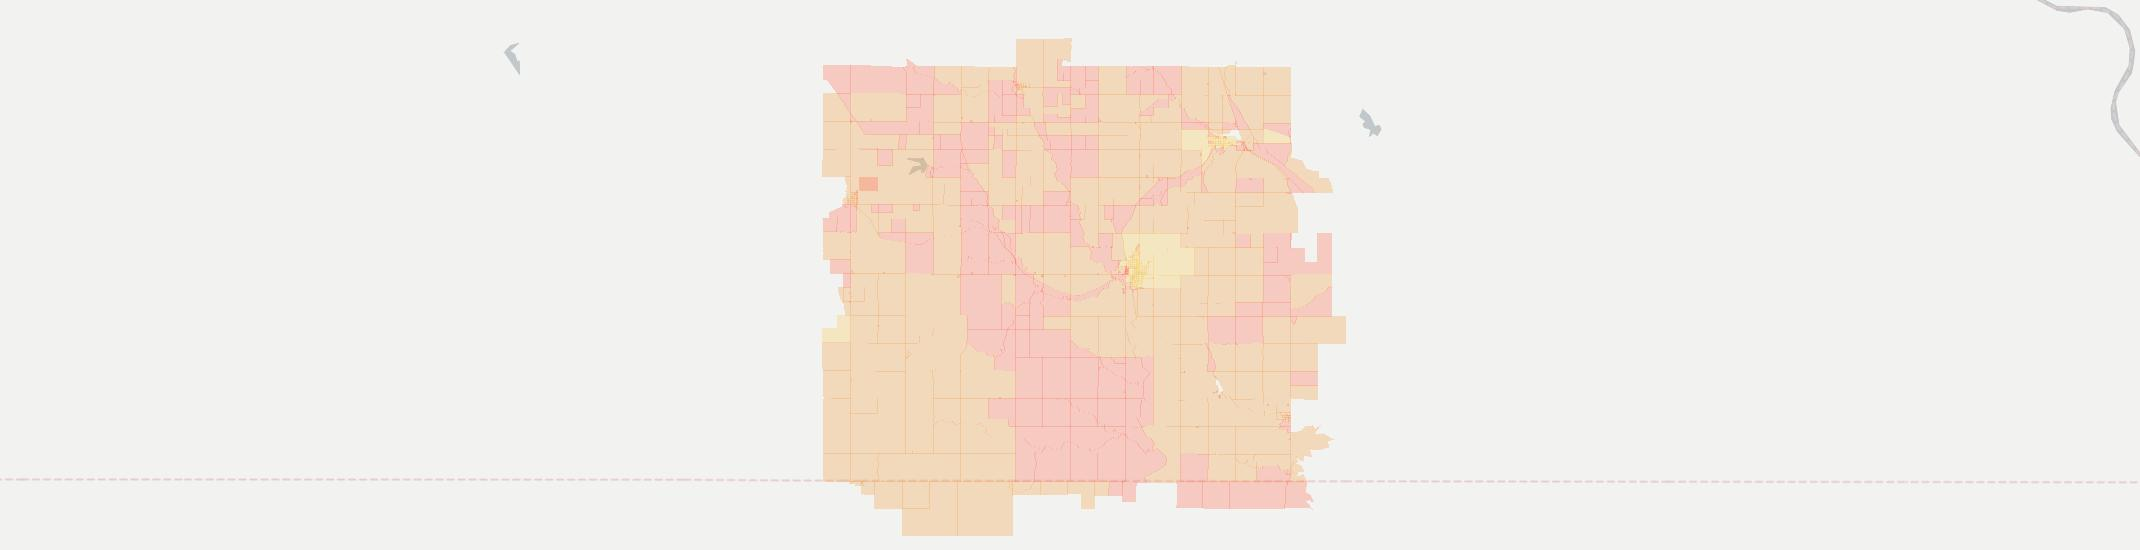 Pawnee City Internet Competition Map. Click for interactive map.